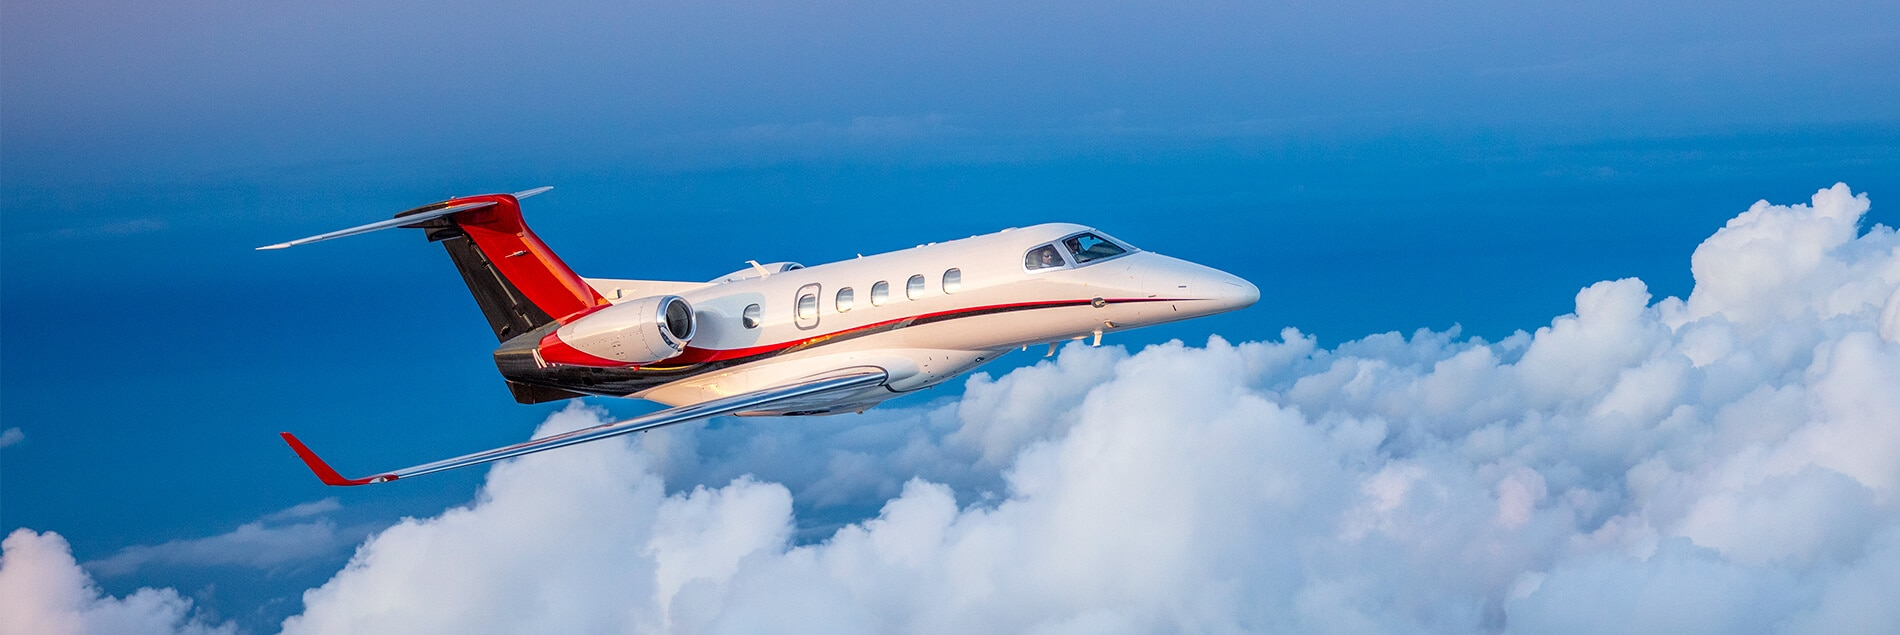 Embraer Phenom 300 in Clouds